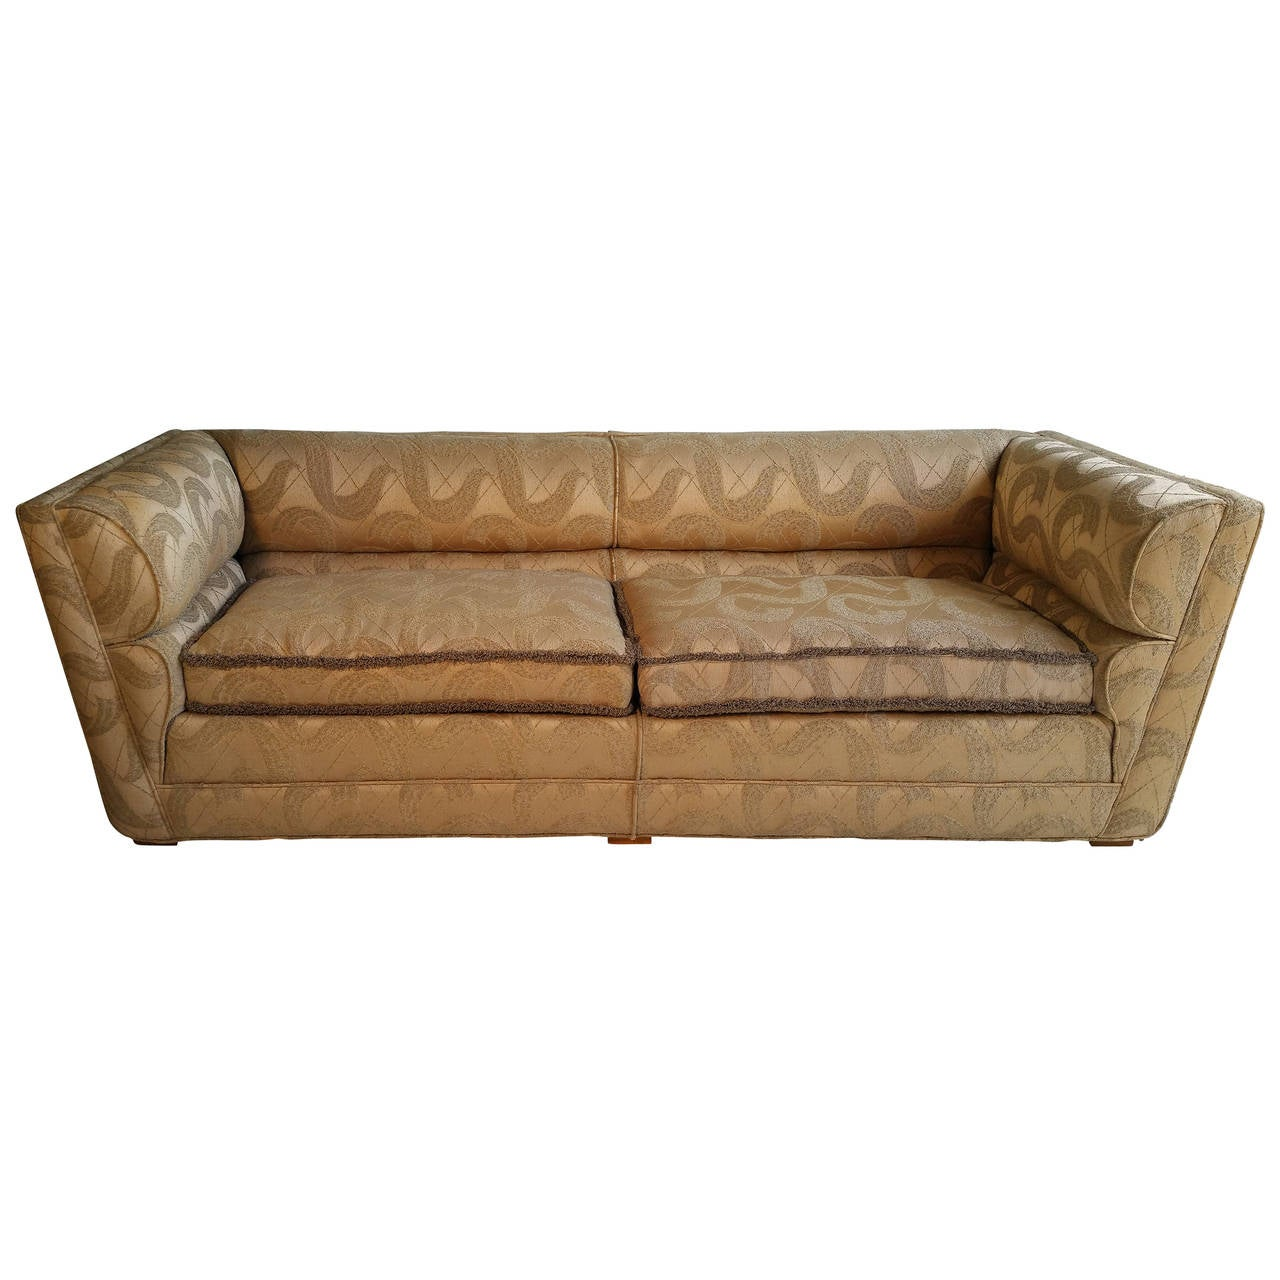 Superieur Outstanding Art Deco Sofa Original Sculpted Brocade Fabric For Sale